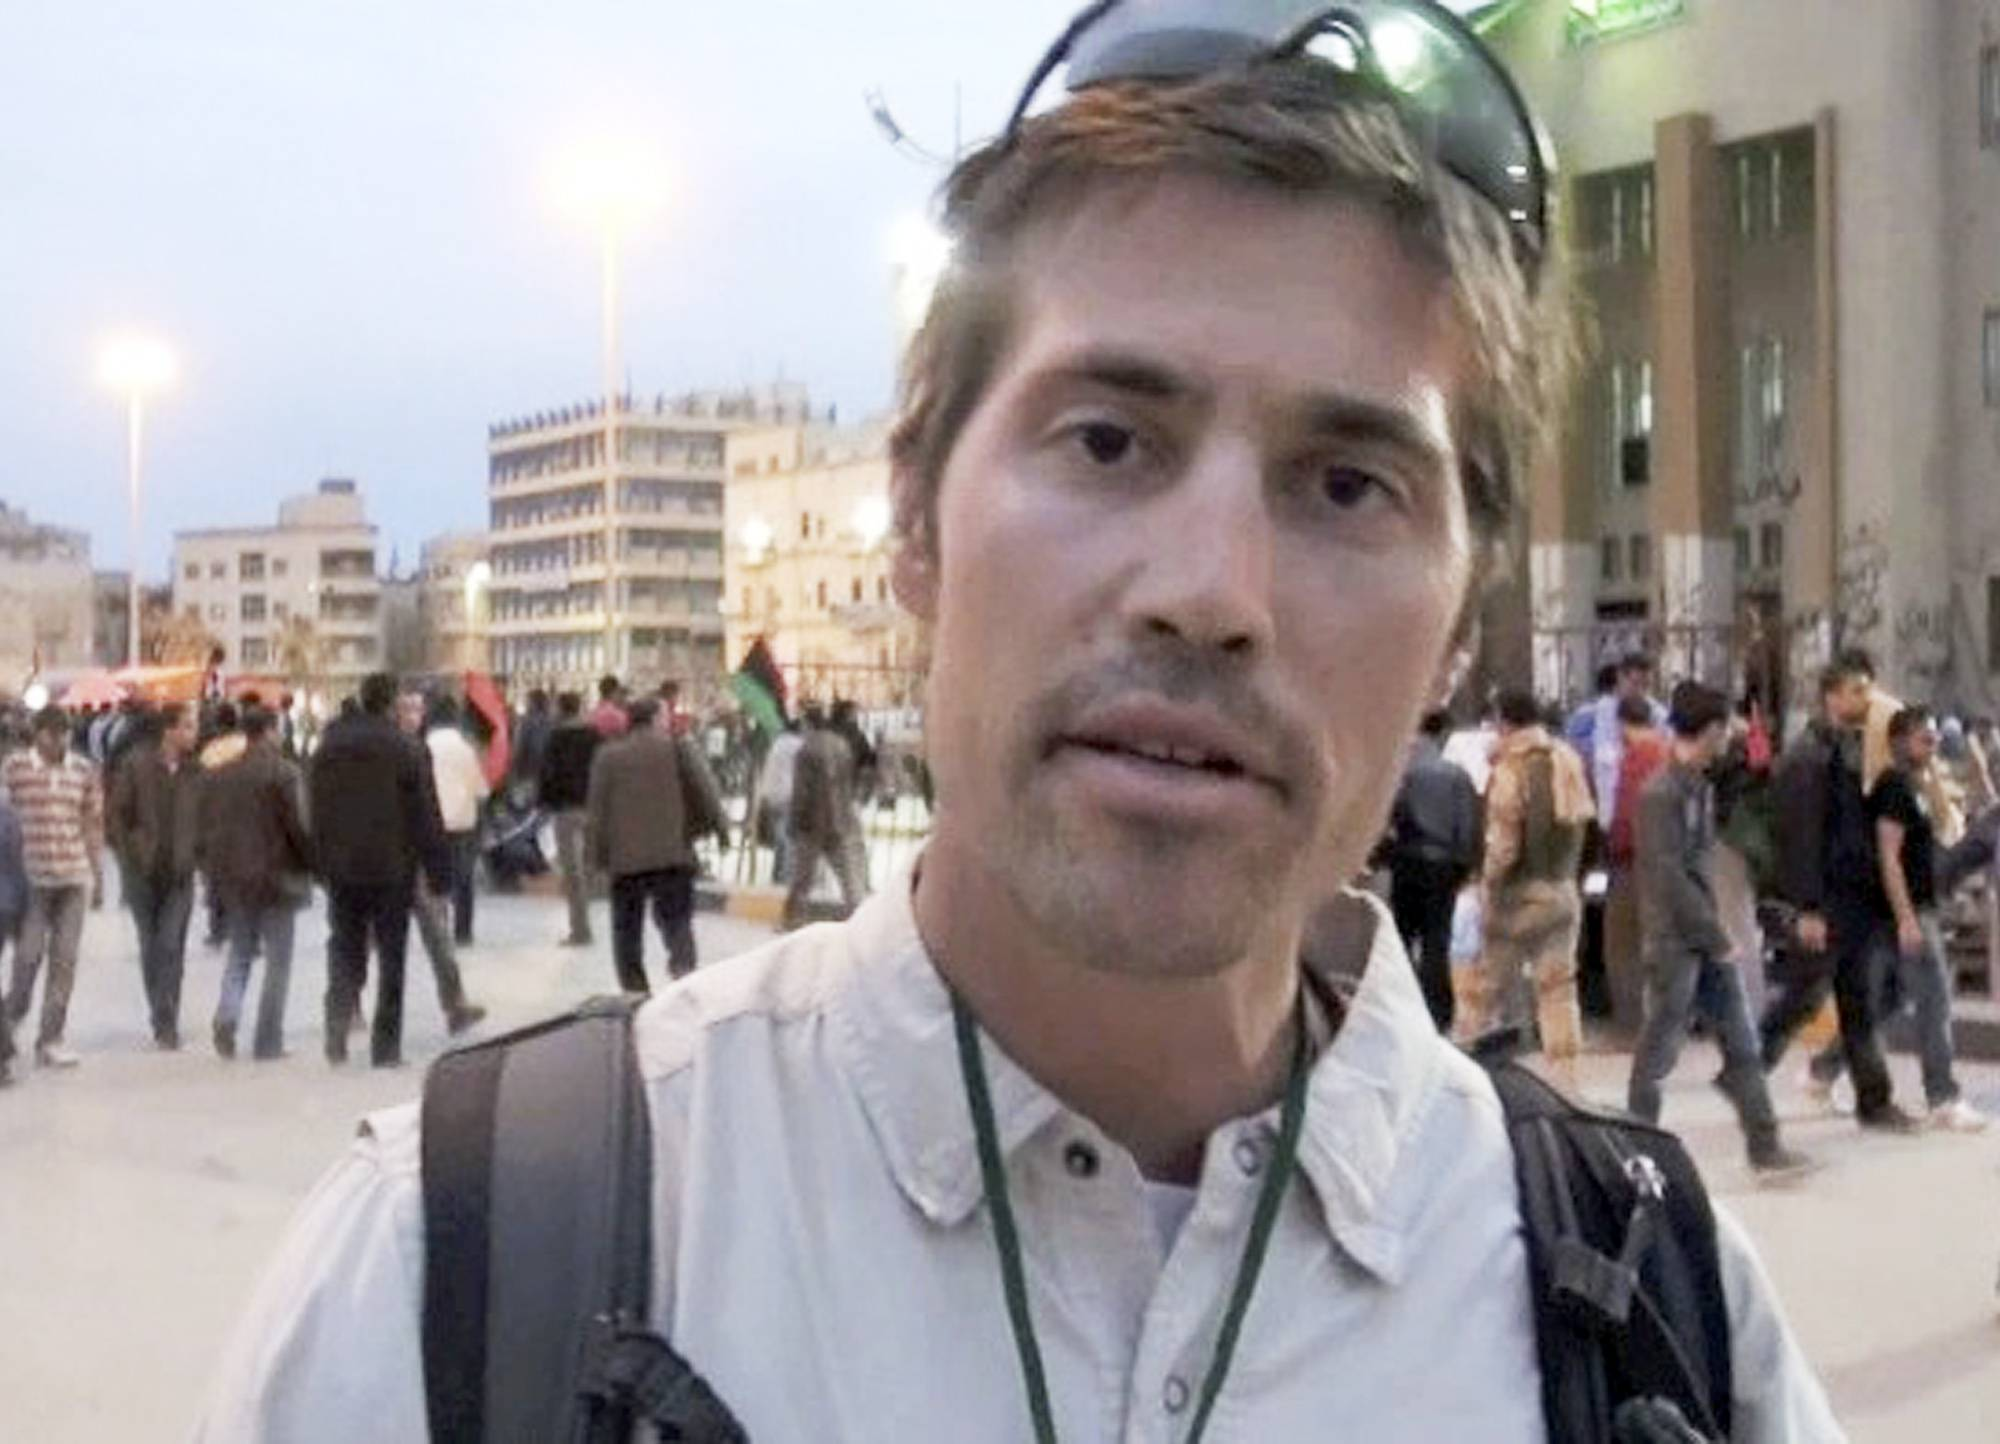 James Foley of Rochester, N.H., a freelance contributor for GlobalPost, in Benghazi, Libya. In a horrifying act of revenge for U.S. airstrikes in northern Iraq, militants with the Islamic State extremist group have beheaded Foley -- and are threatening to kill another hostage, U.S. officials say.